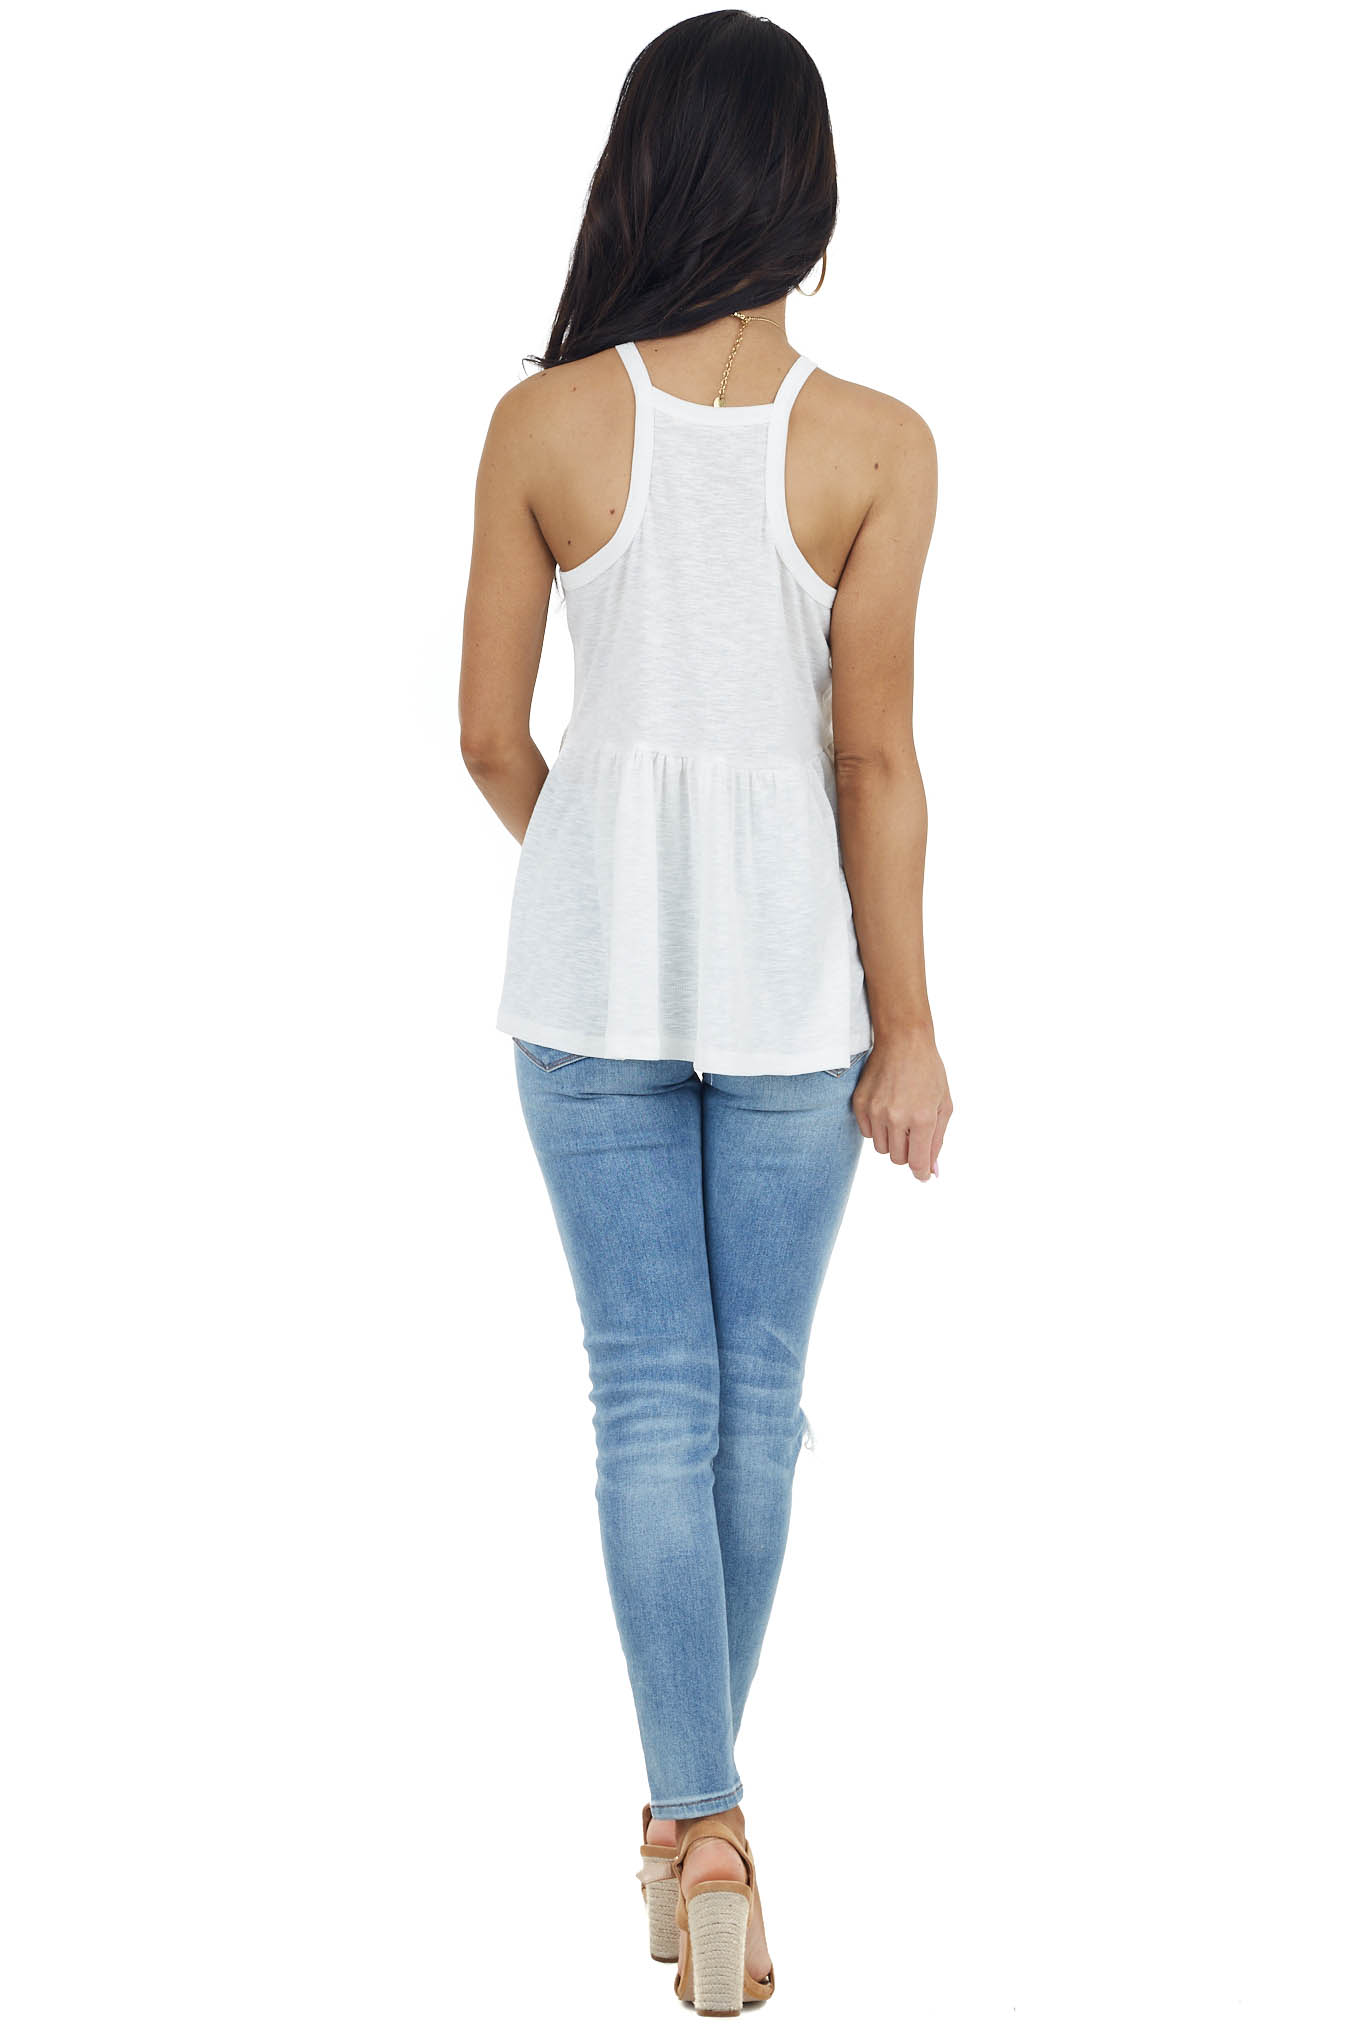 Ivory Halter Neck Stretchy Knit Top with Flowy Drop Waist